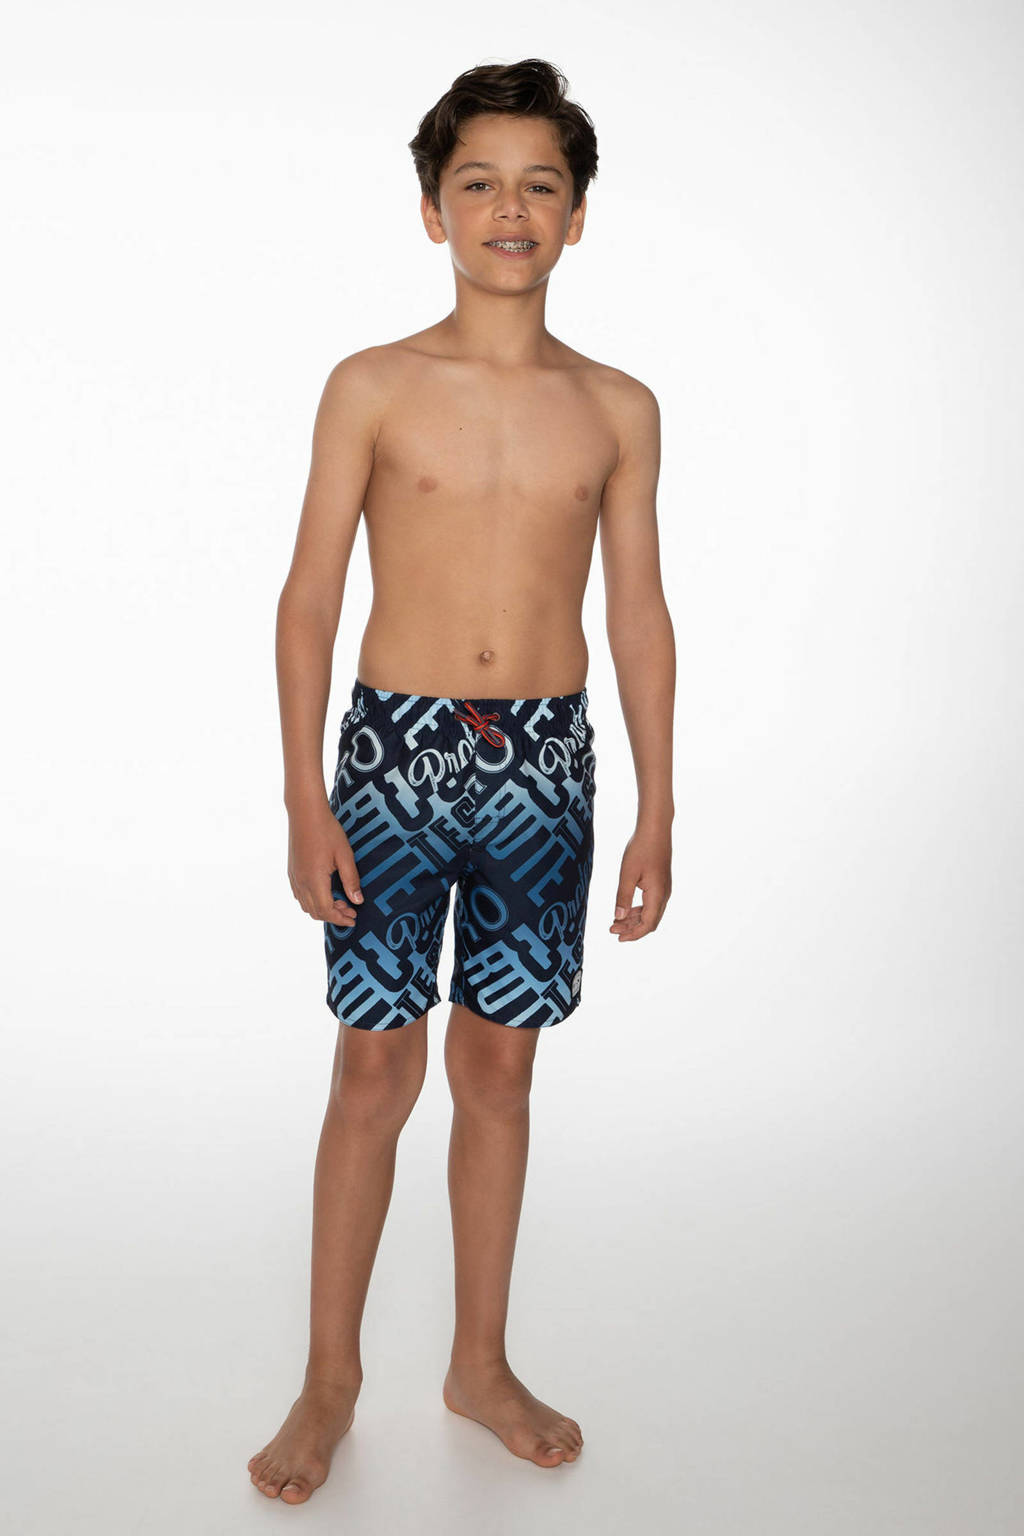 Protest zwemshort Taz met all over print donkerblauw/blauw, Oxford blue